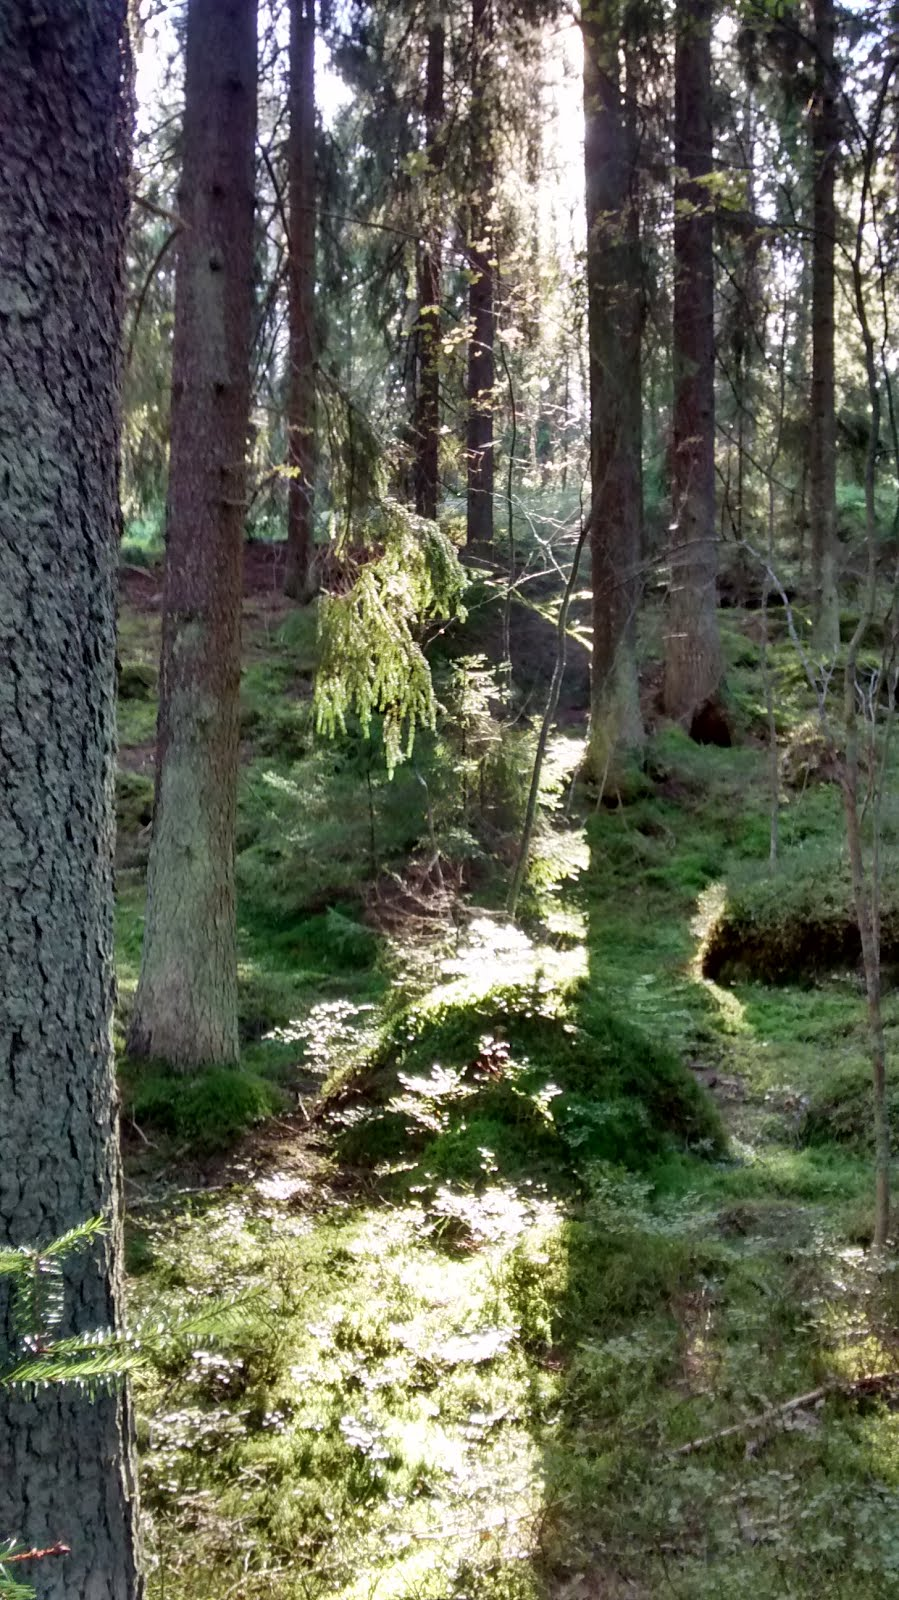 Light shining into the Finnish forest